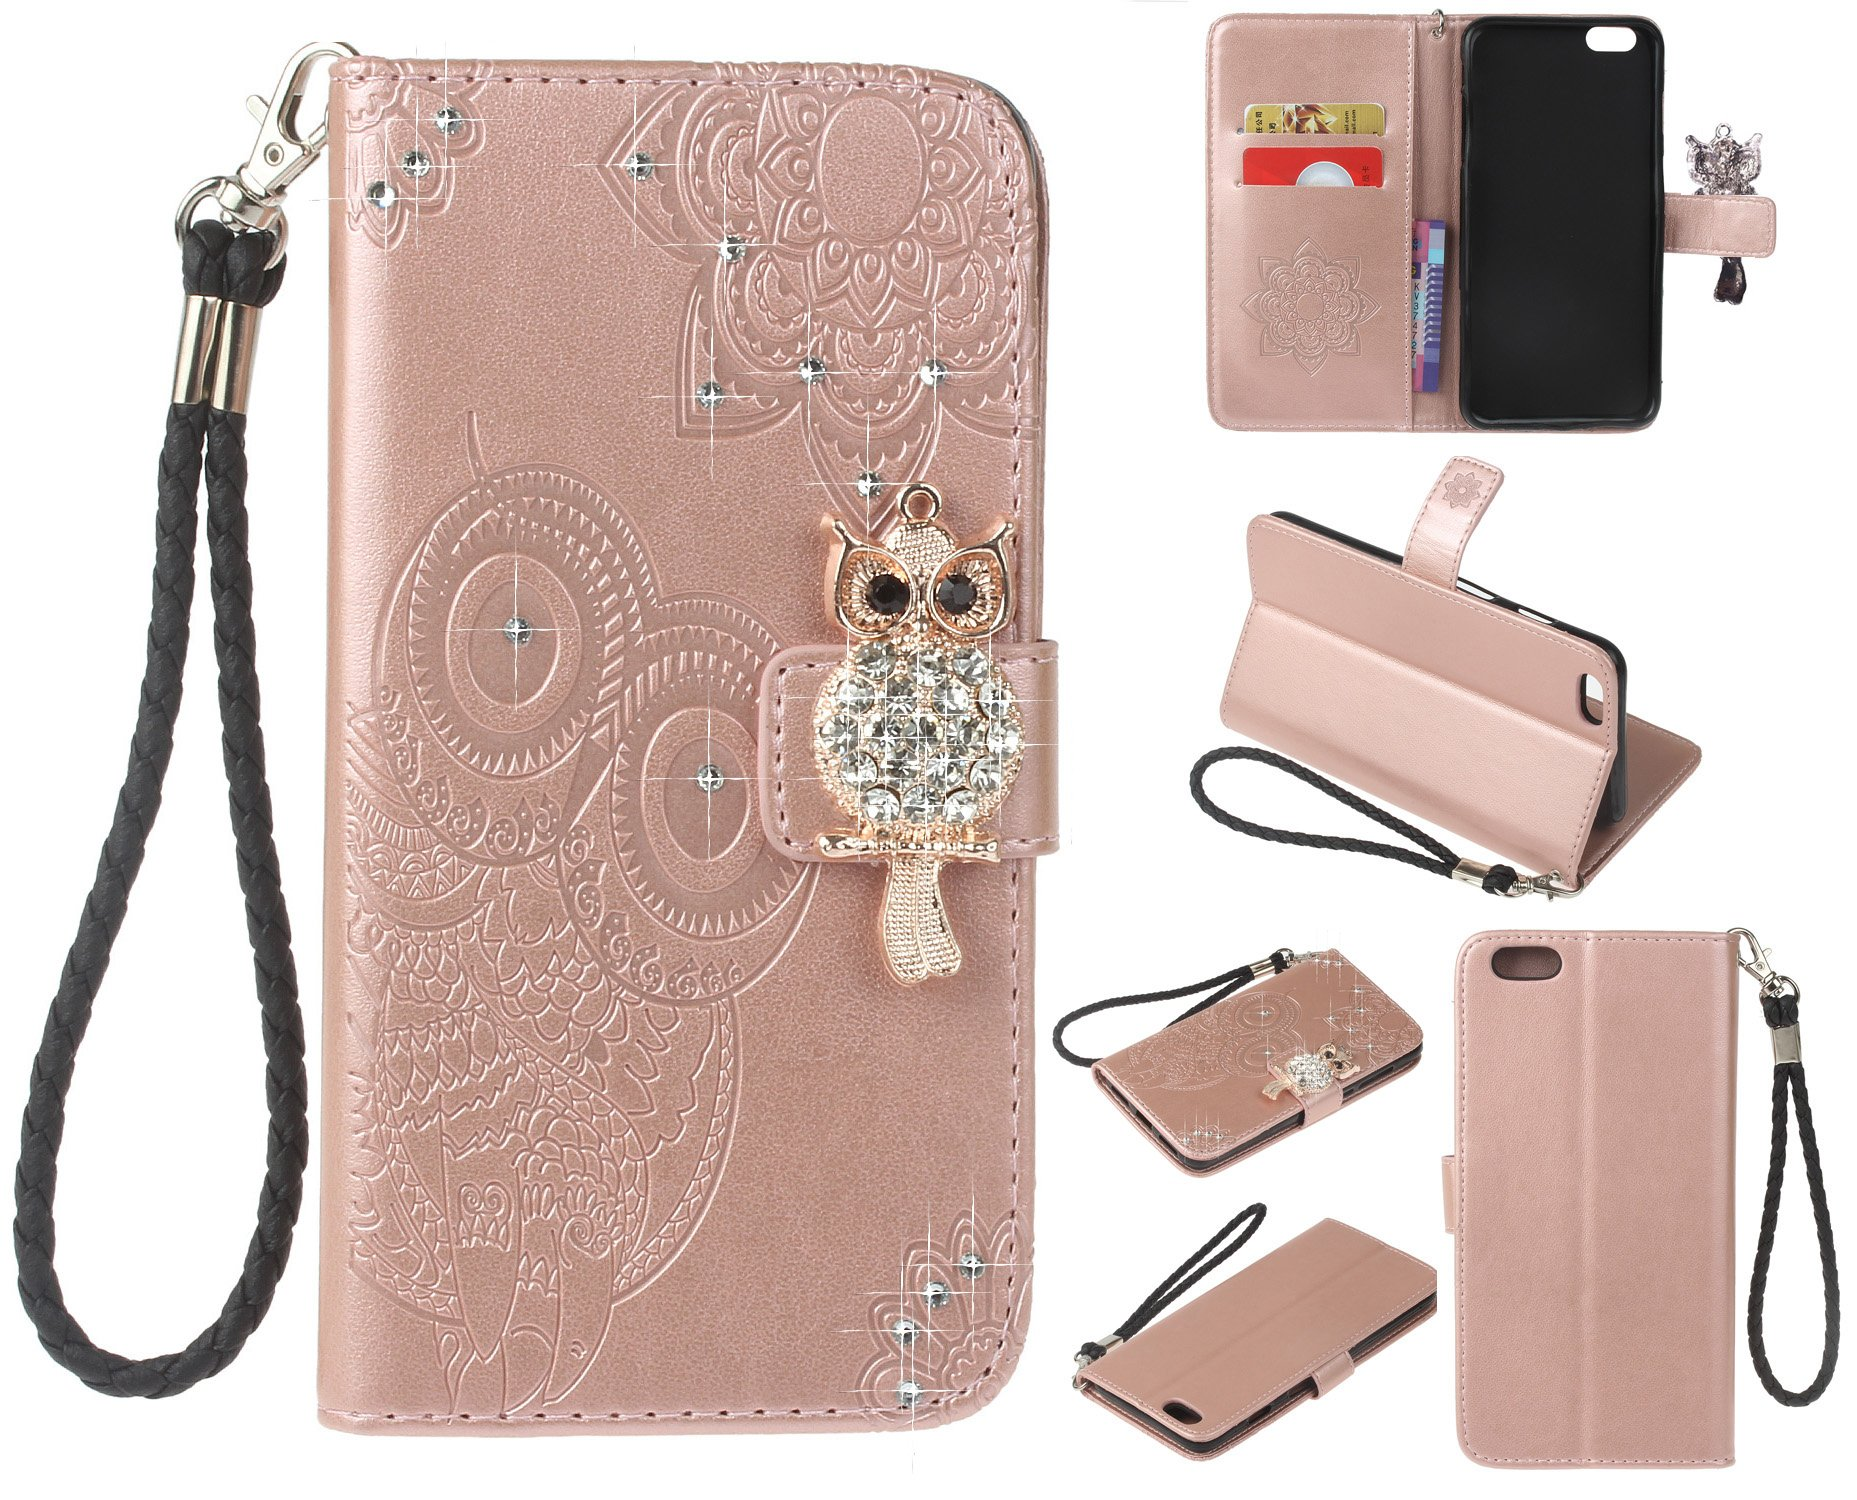 Strap Diamond Wallet Case for iPhone 6/6s 4.7 Inch,Aoucase Luxury 3D Owl Bling Gems Magnetic Cute Mandala Print PU Leather Soft TPU Stand Flip Case with Black Dual-use Pen - Rose Gold by Aoucase